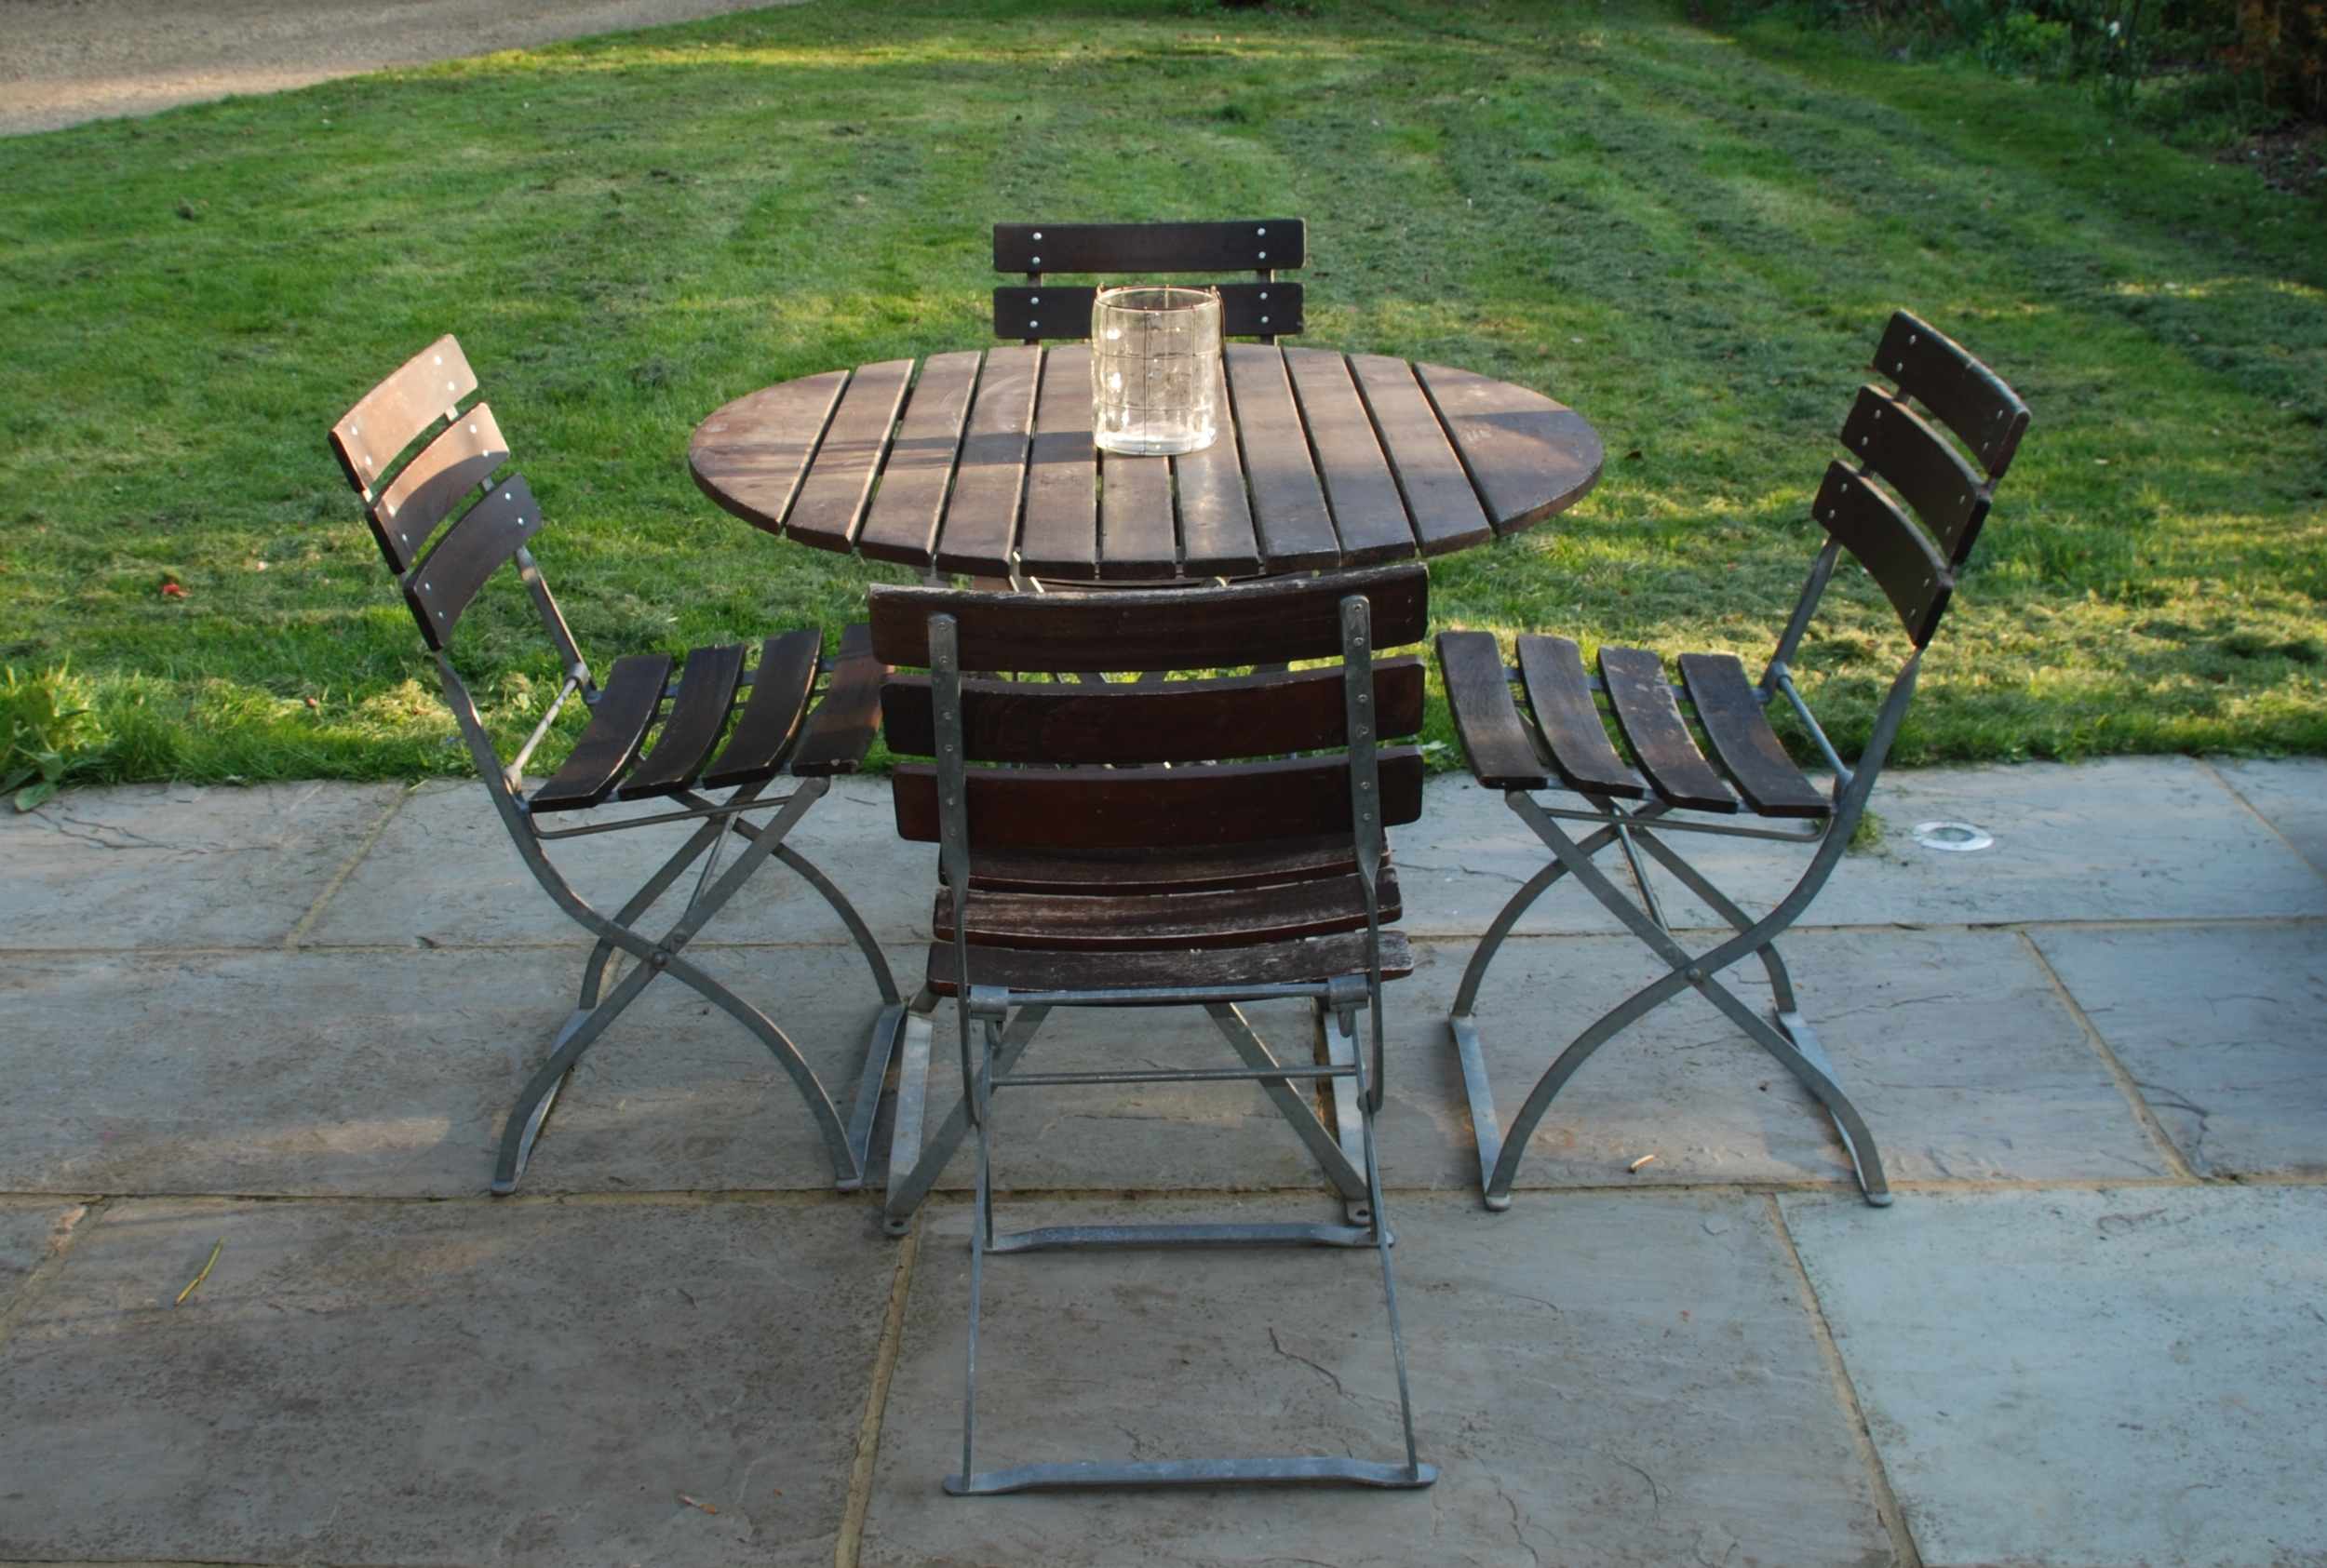 Beer kieller tables and benches